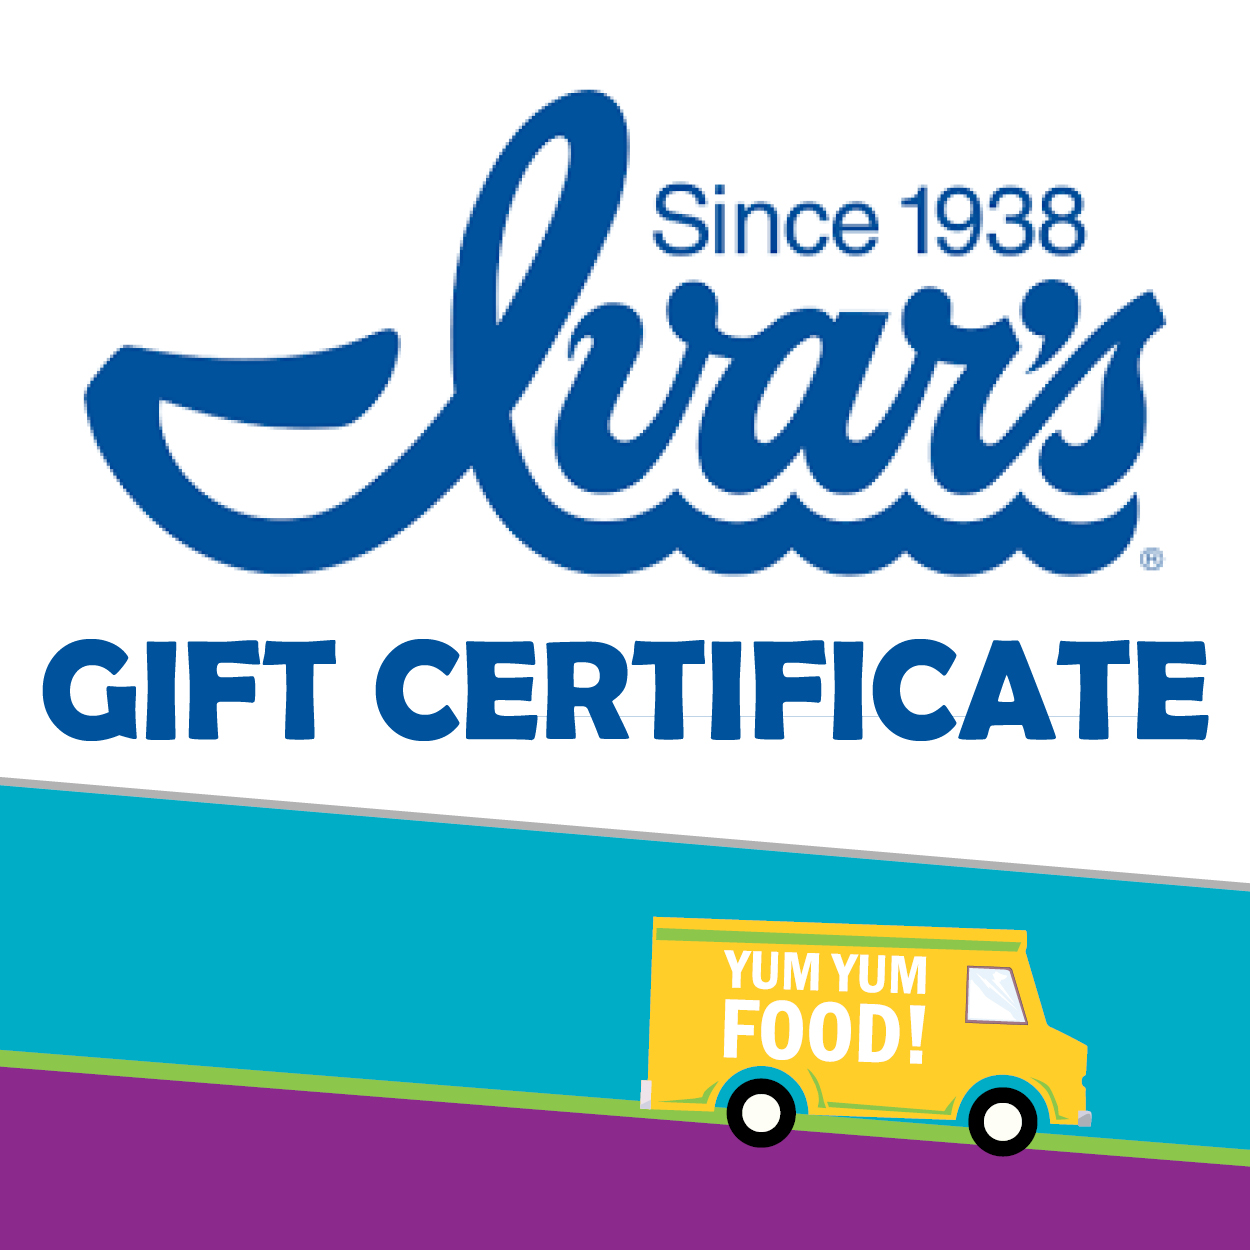 Enter to Win Prizes6 - Ivars.jpg